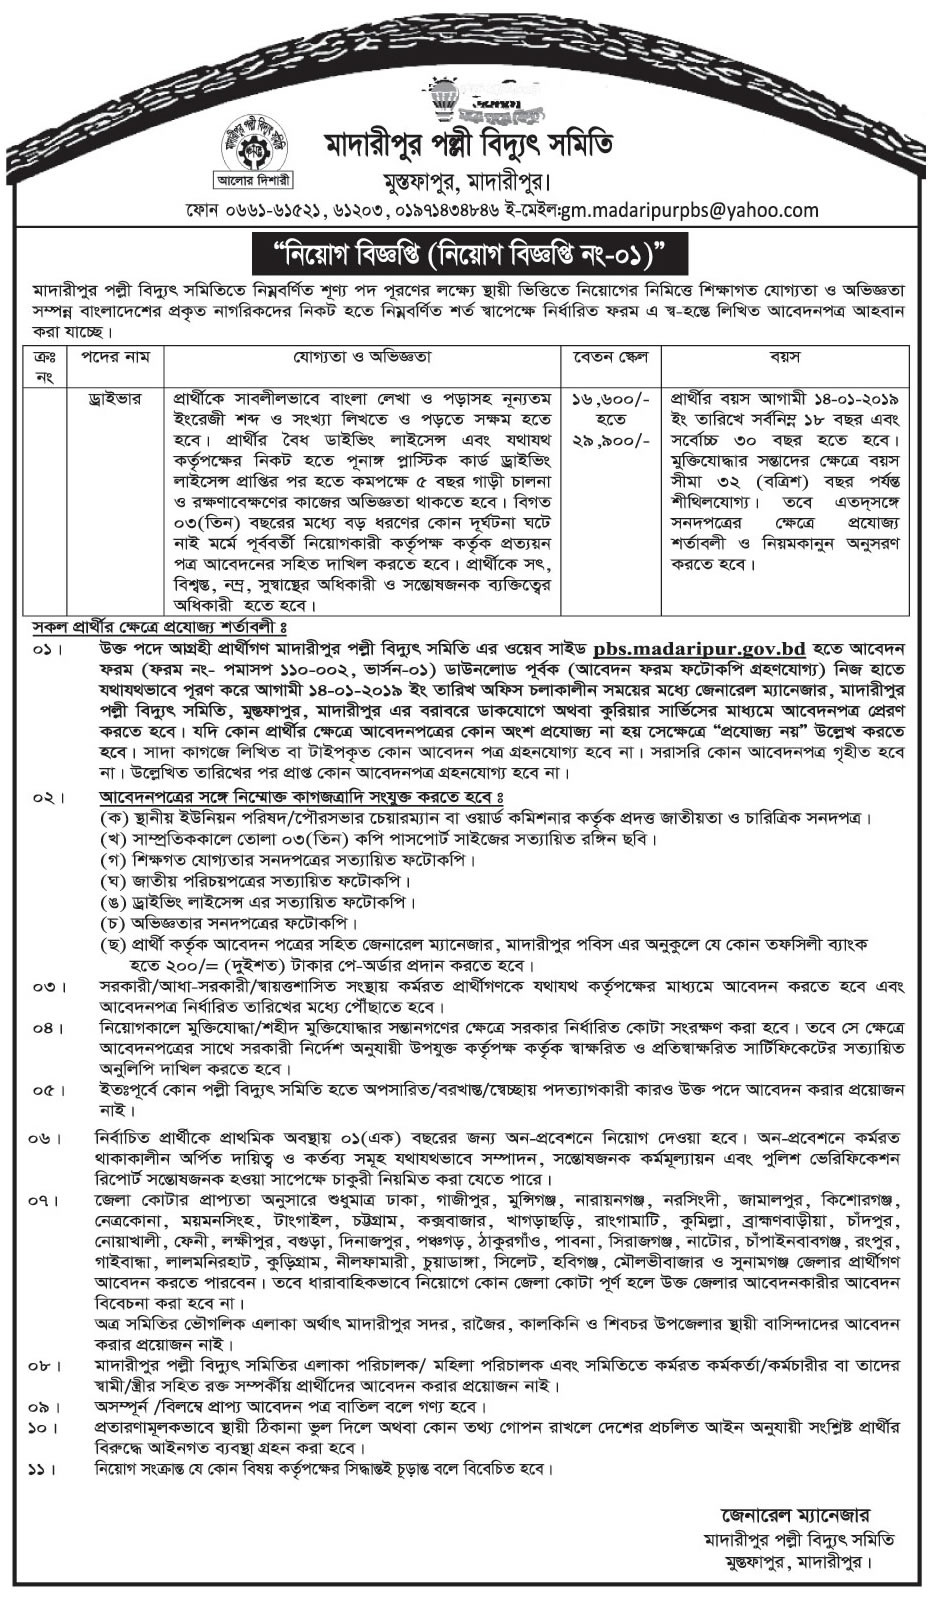 Bangladesh Rural Electrification Board BREB Job Circular 2018